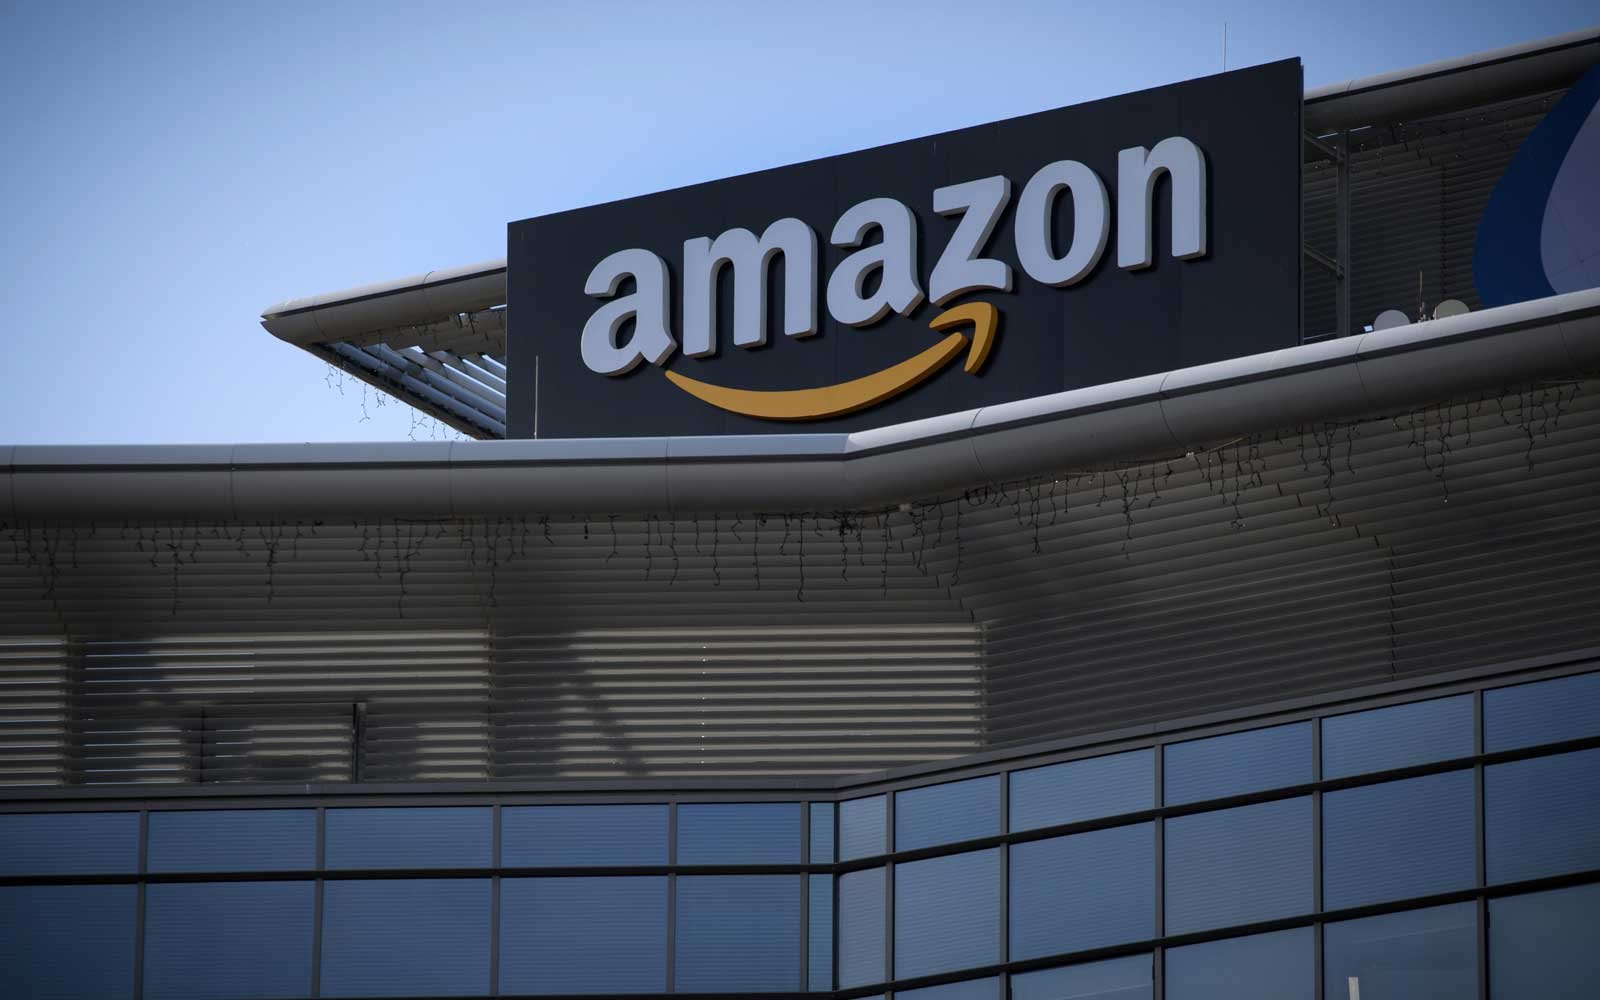 Amazon S New Headquarters Will Be In One Of These Cities